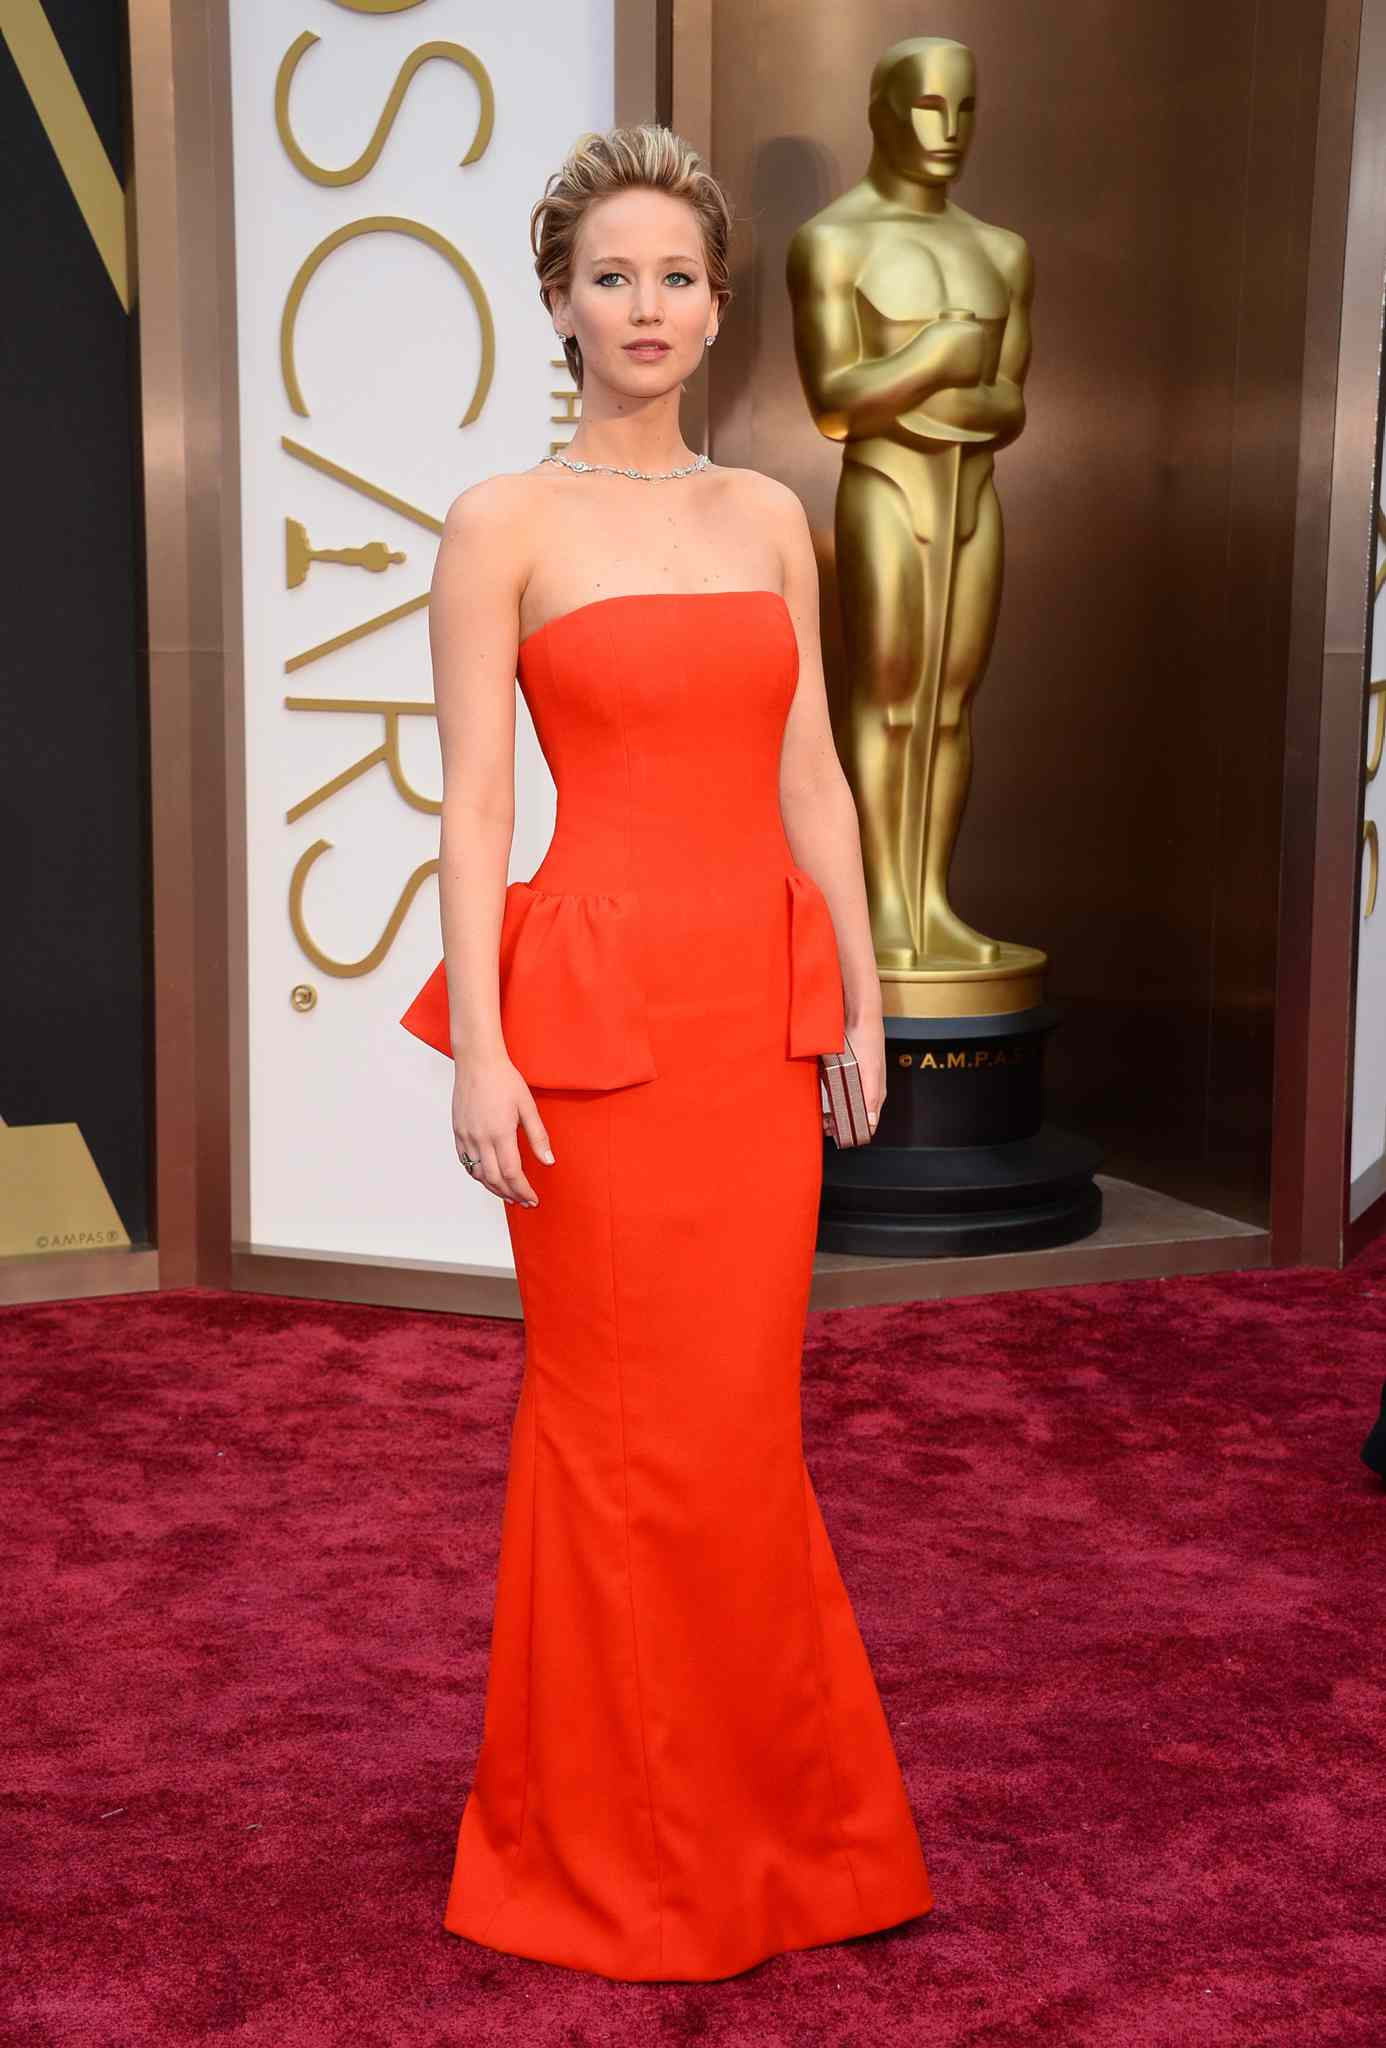 Jennifer Lawrence arrives at the Oscars.